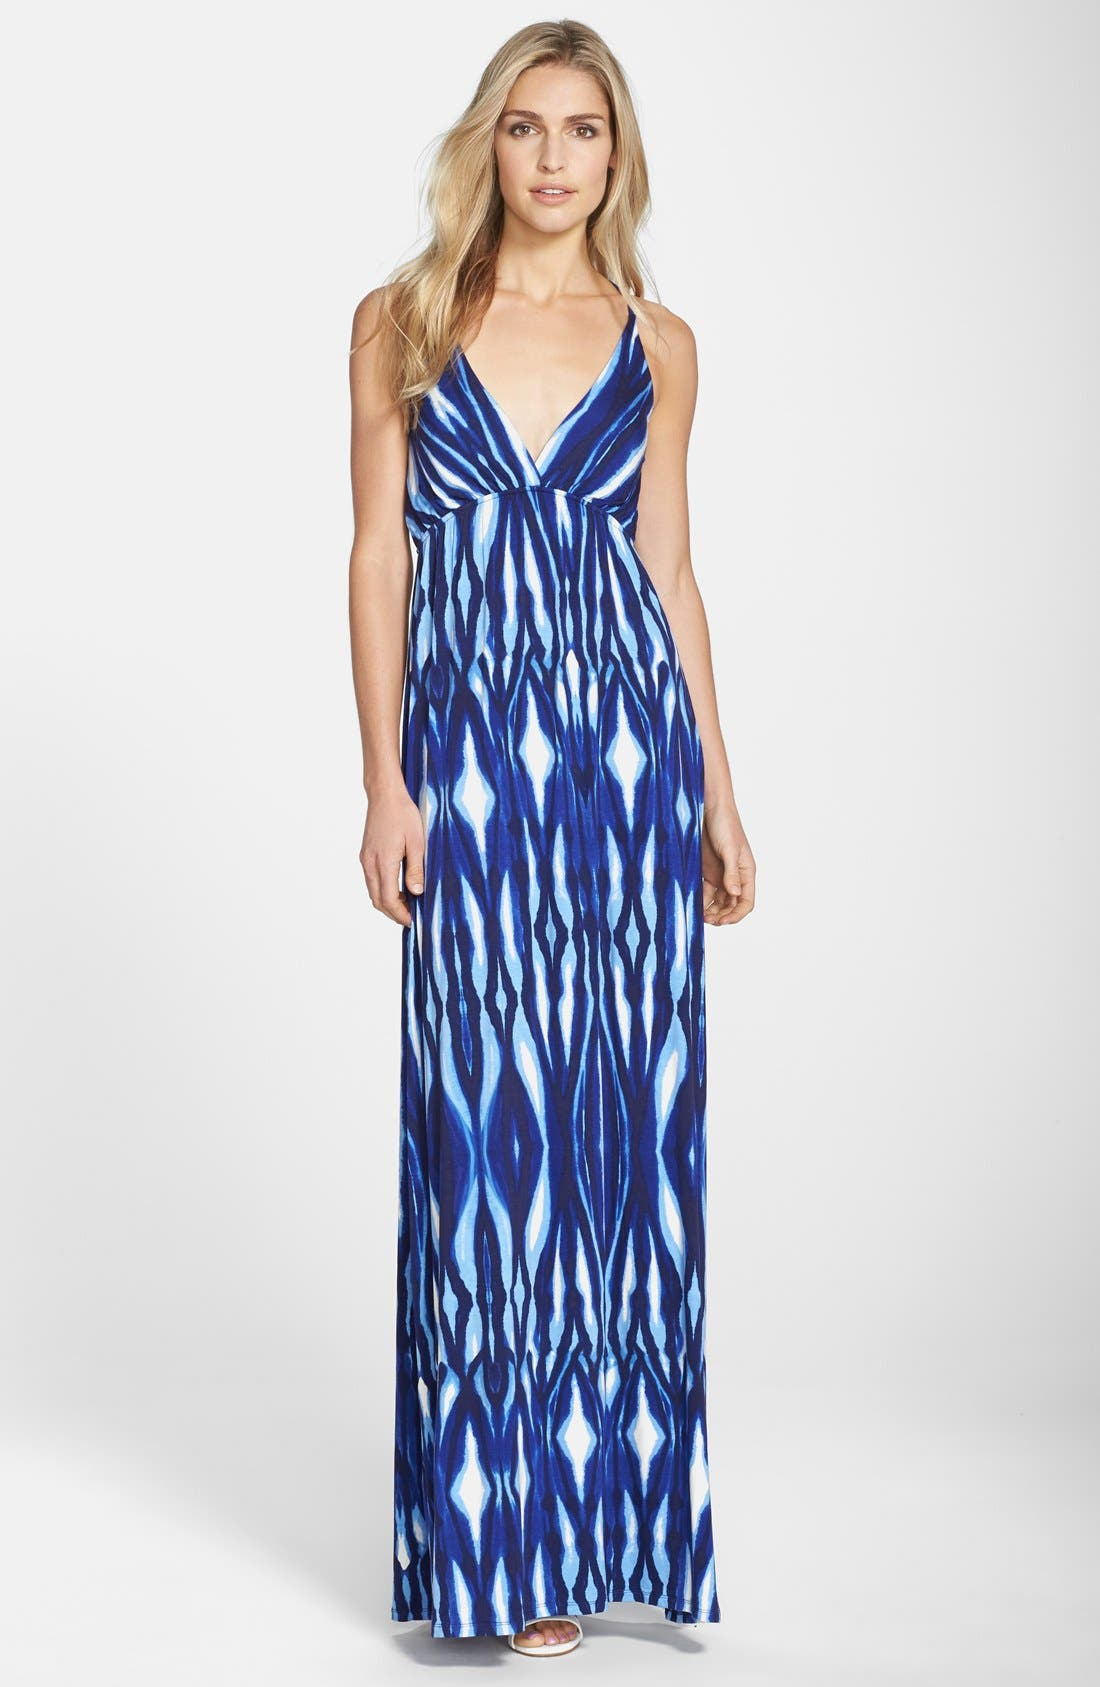 Main Image - Felicity & Coco Print Maxi Dress (Regular & Petite) (Nordstrom Exclusive)